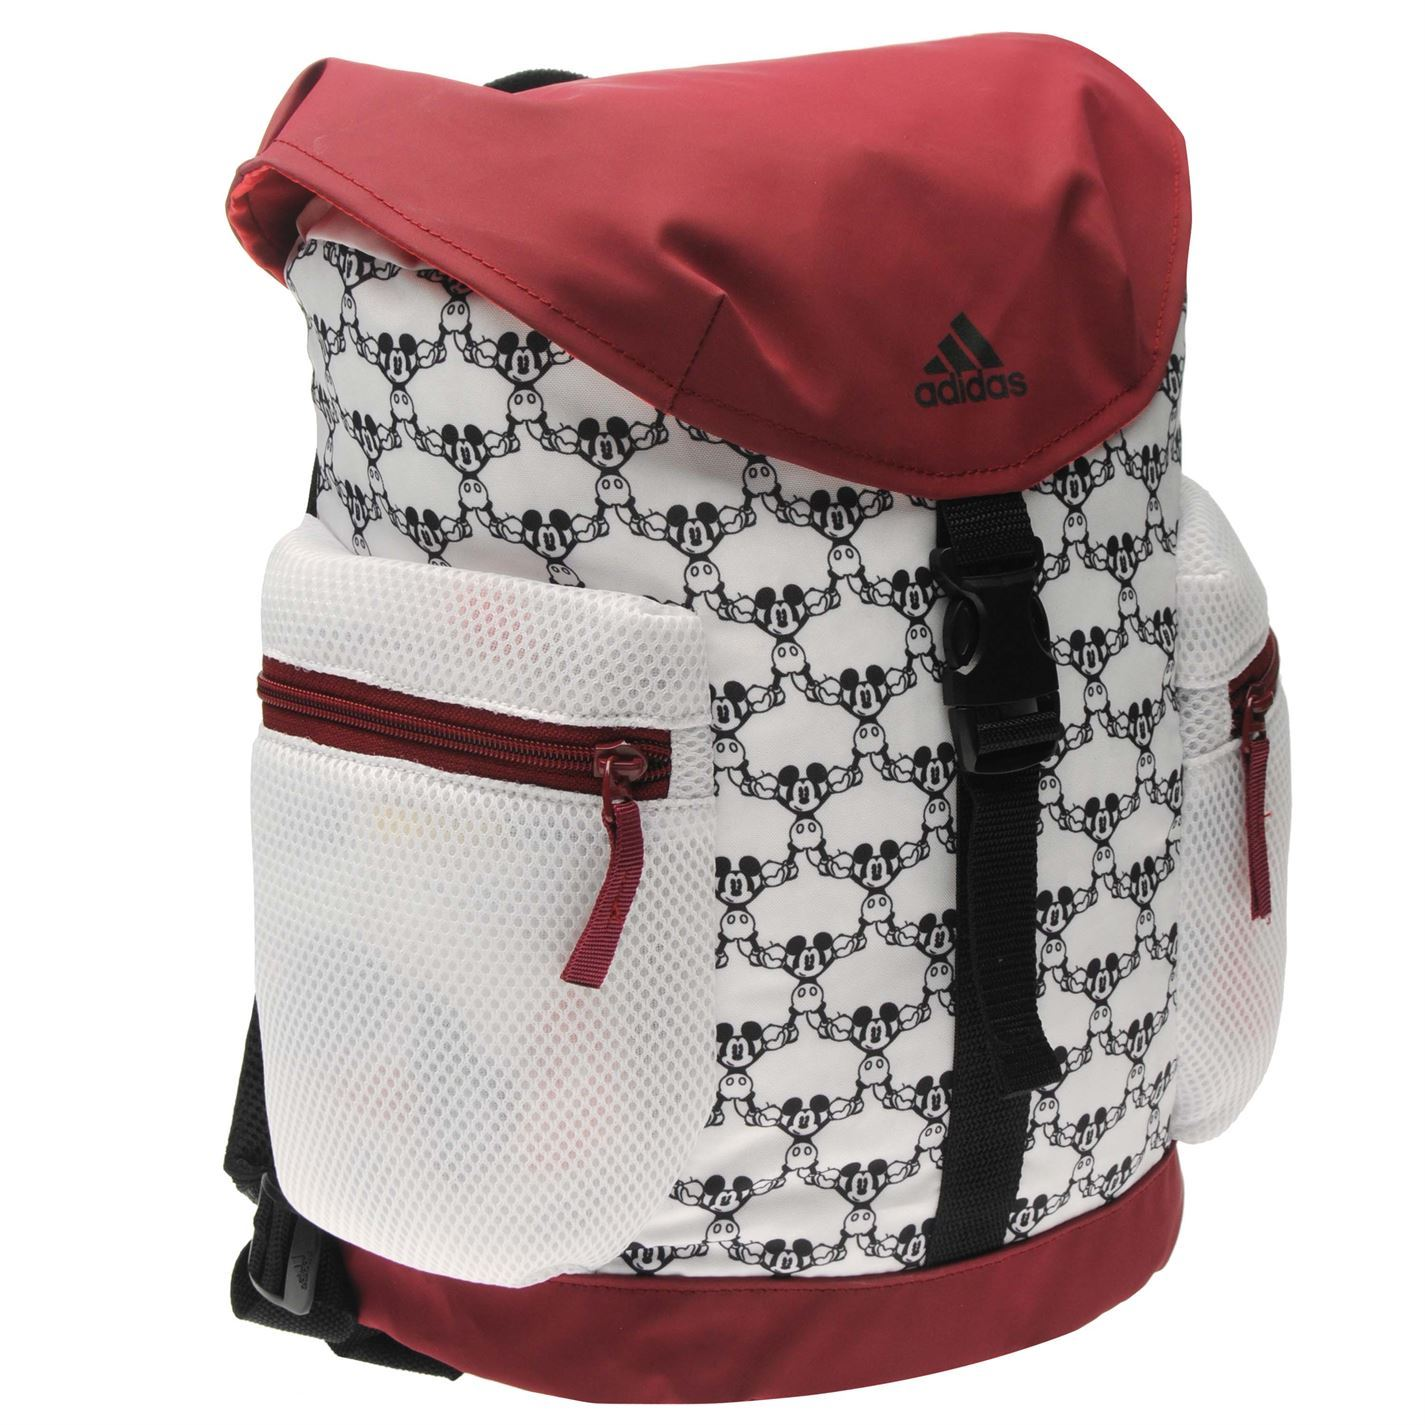 19e9372d04 Red And White Adidas Backpack- Fenix Toulouse Handball